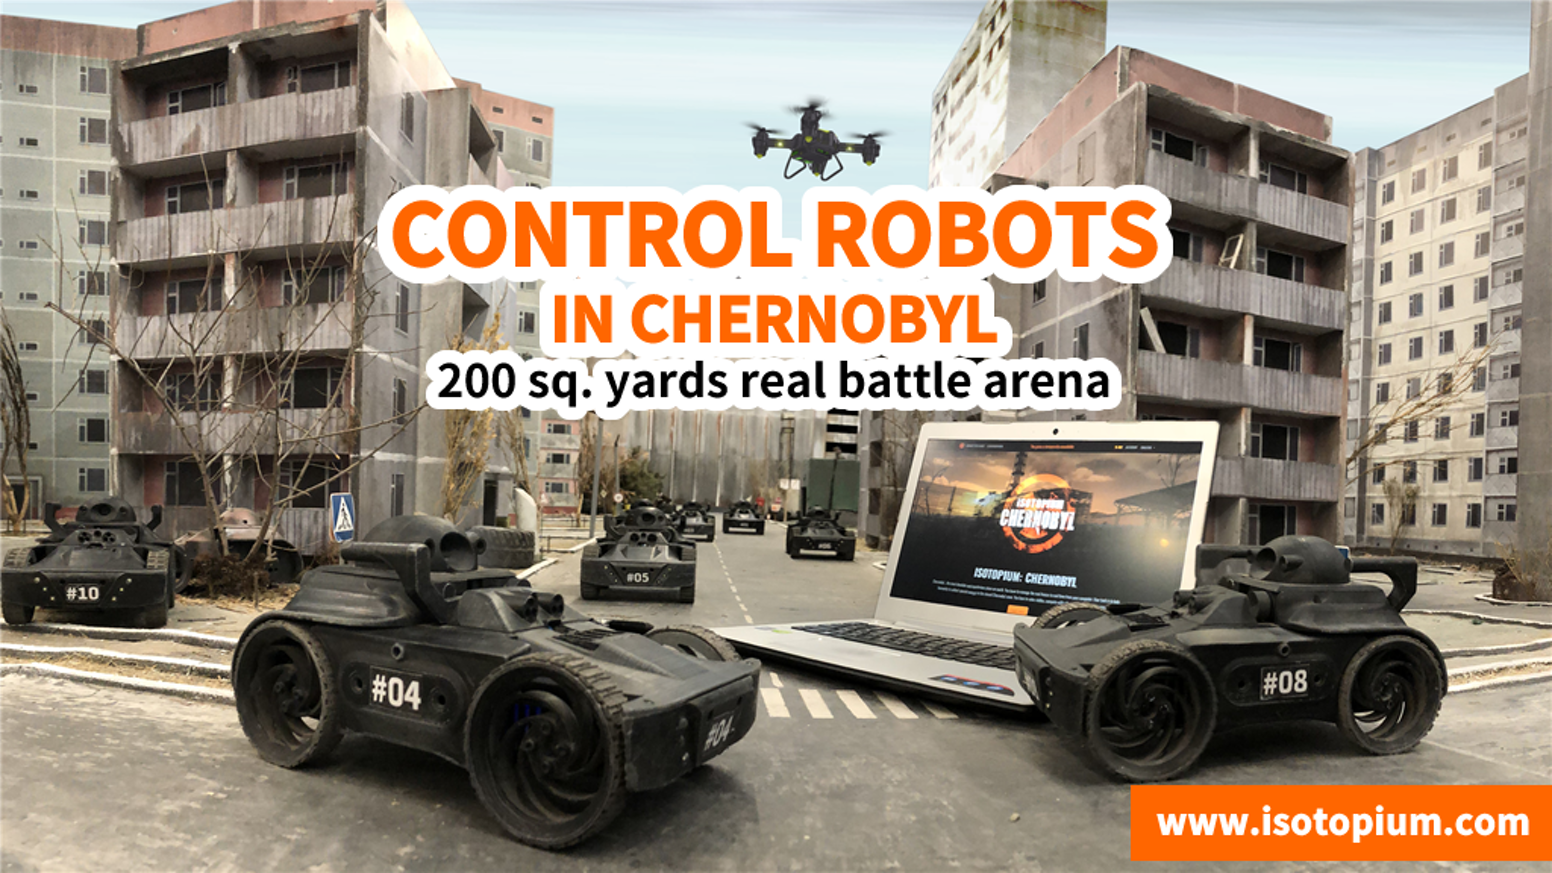 It's a 200 sq. yards real playinig arena (Chernobyl copy) with really existing robots. Isotopium.